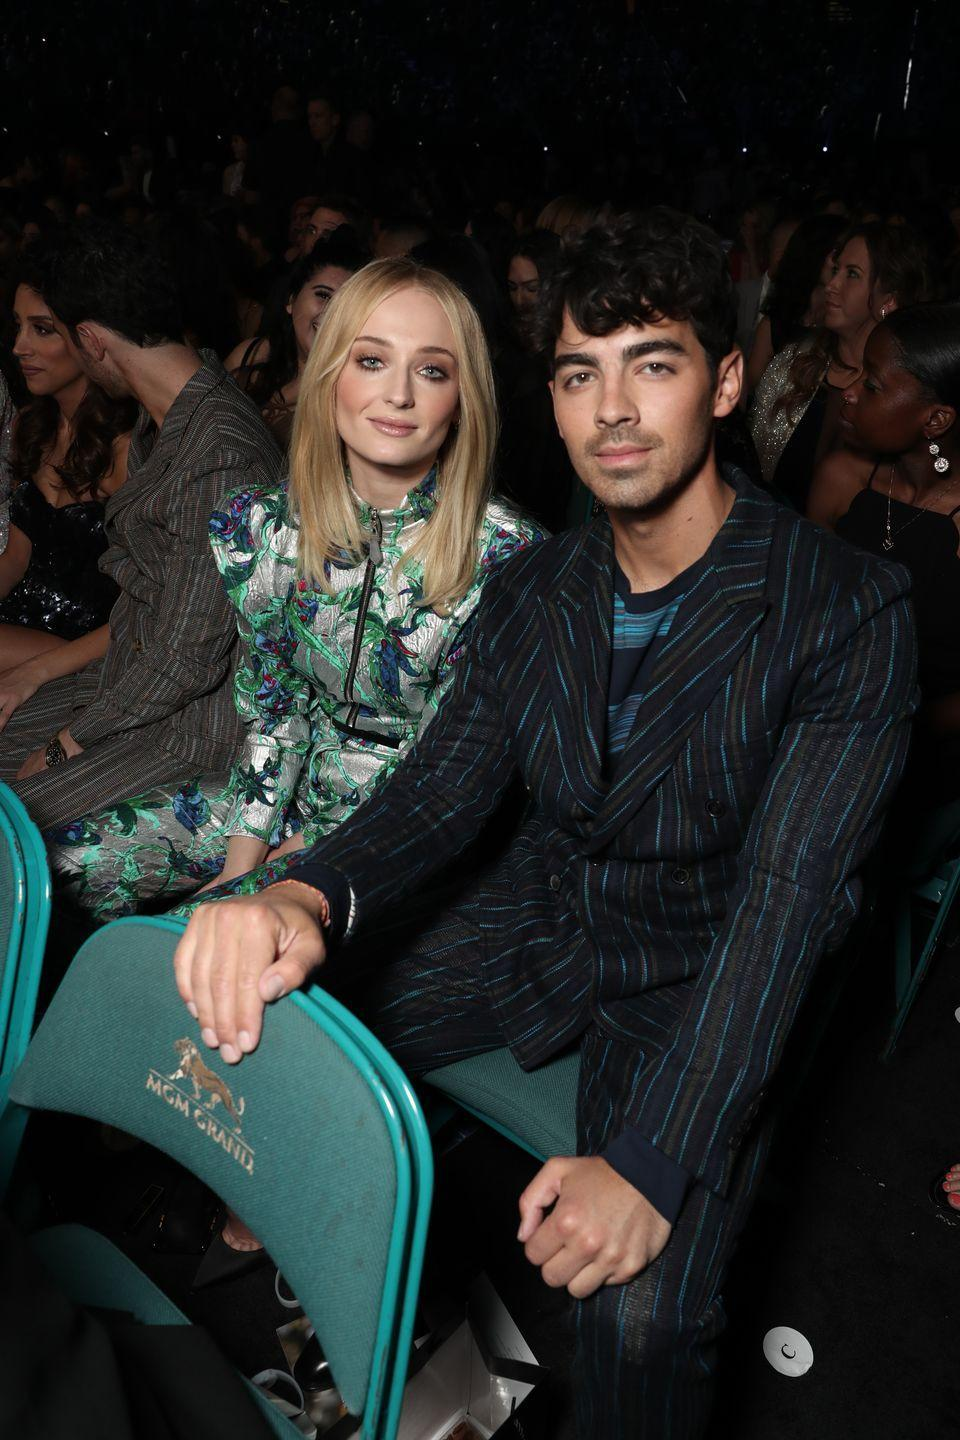 """<p>Details about Sophie Turner and Joe Jonas's summer wedding in France were already spreading when they <a href=""""https://www.harpersbazaar.com/celebrity/latest/a27339851/sophie-turner-joe-jonas-wedding-las-vegas-photos/"""" rel=""""nofollow noopener"""" target=""""_blank"""" data-ylk=""""slk:eloped in Las Vegas"""" class=""""link rapid-noclick-resp"""">eloped in Las Vegas</a> following the 2019 Billboard Music Awards. Apparently, the couple had to legally wed in the U.S. before their international vows and decided to have a secret Vegas ceremony — but <a href=""""https://twitter.com/MyeishaEssex/status/1123810778119905280?ref_src=twsrc%5Etfw%7Ctwcamp%5Etweetembed%7Ctwterm%5E1123810778119905280%7Ctwgr%5Eshare_3&ref_url=https%3A%2F%2Fwww.harpersbazaar.com%2Fcelebrity%2Flatest%2Fa27339851%2Fsophie-turner-joe-jonas-wedding-las-vegas-photos%2F"""" rel=""""nofollow noopener"""" target=""""_blank"""" data-ylk=""""slk:Diplo blew up their plan"""" class=""""link rapid-noclick-resp"""">Diplo blew up their plan</a> by live streaming their wedding on Instagram. </p>"""